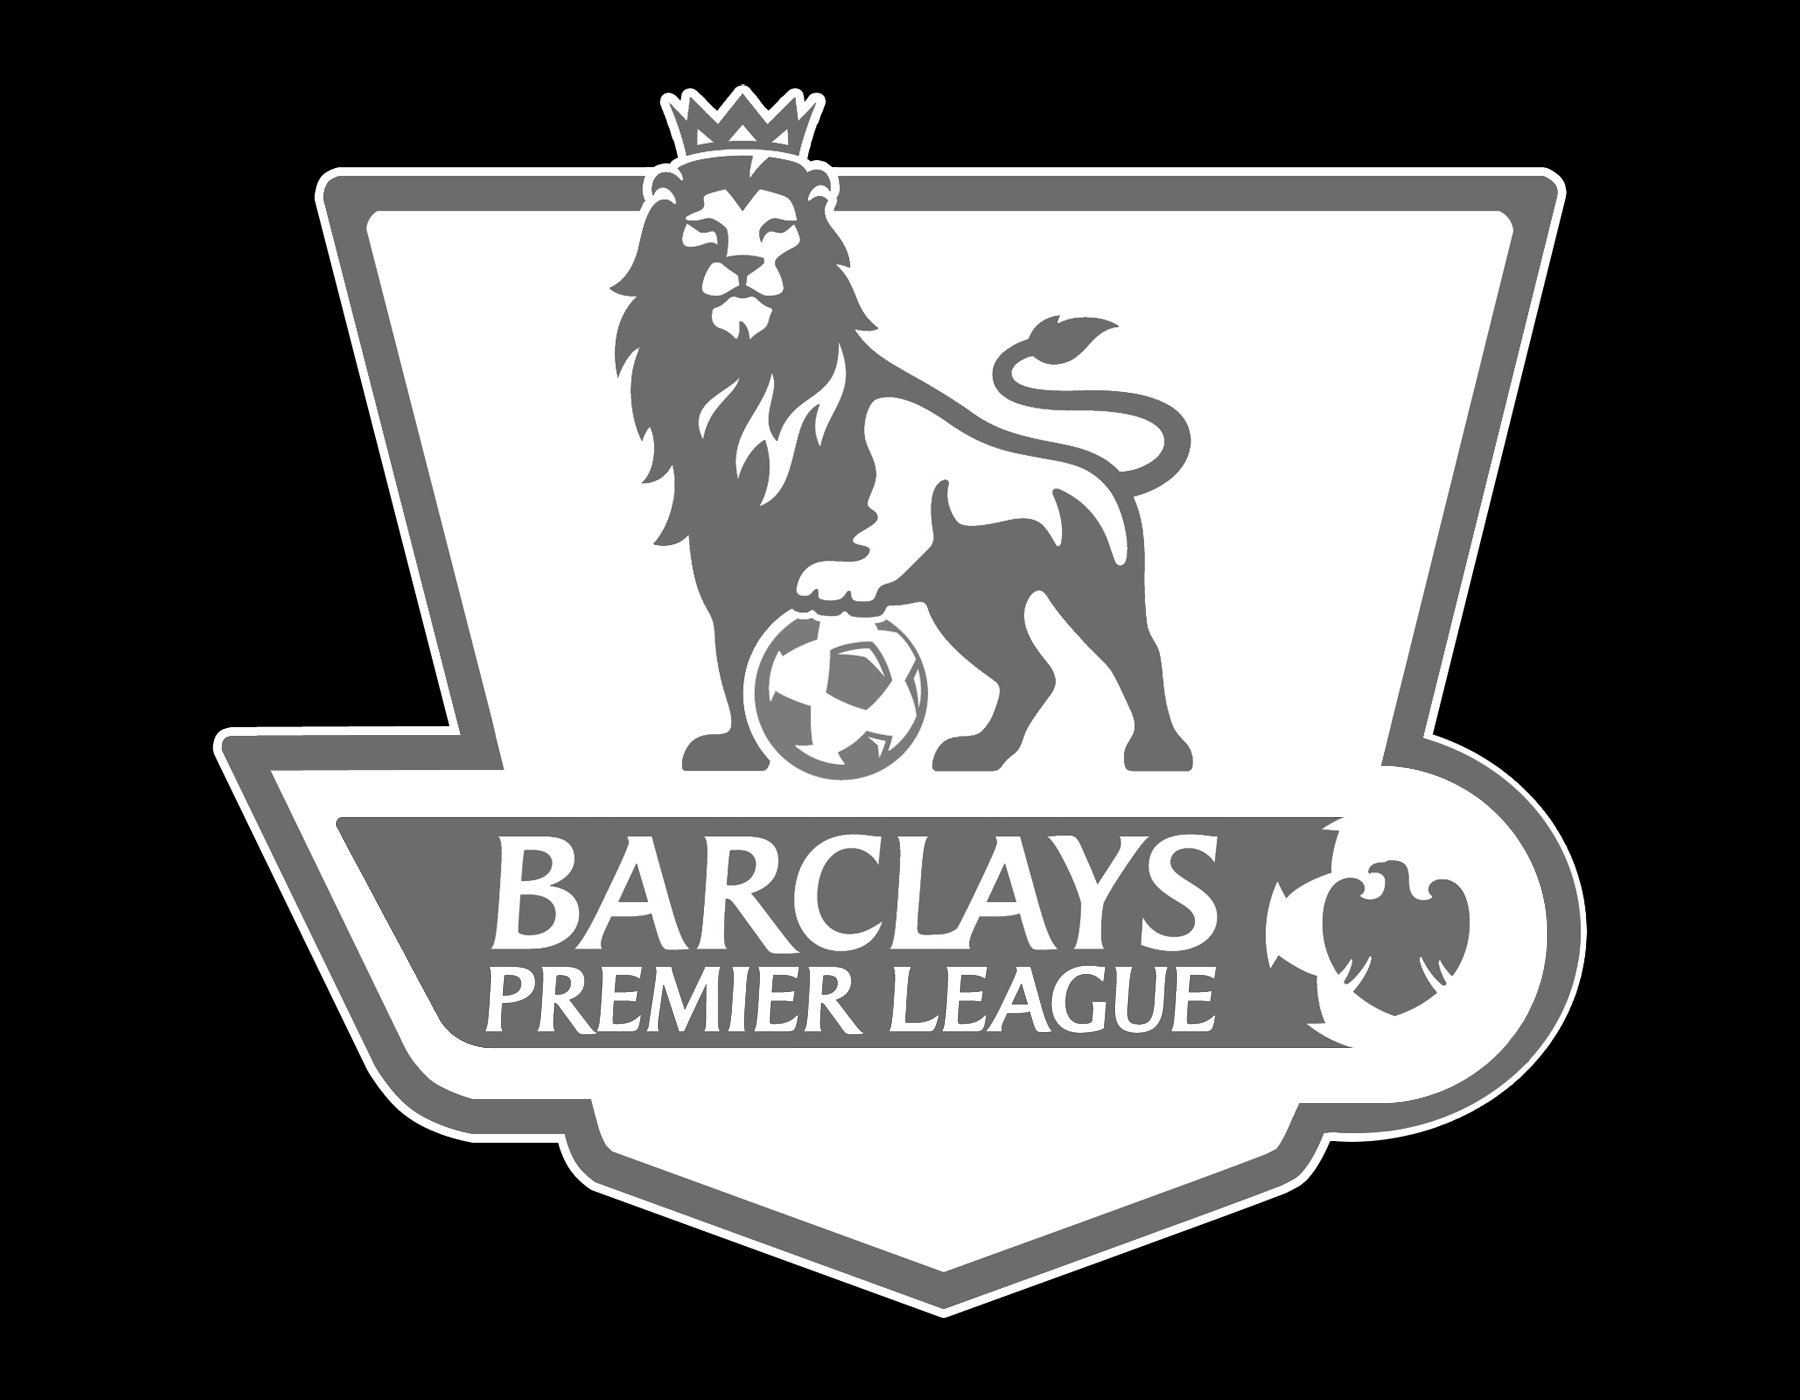 Premier League Logo And Symbol Meaning History Png